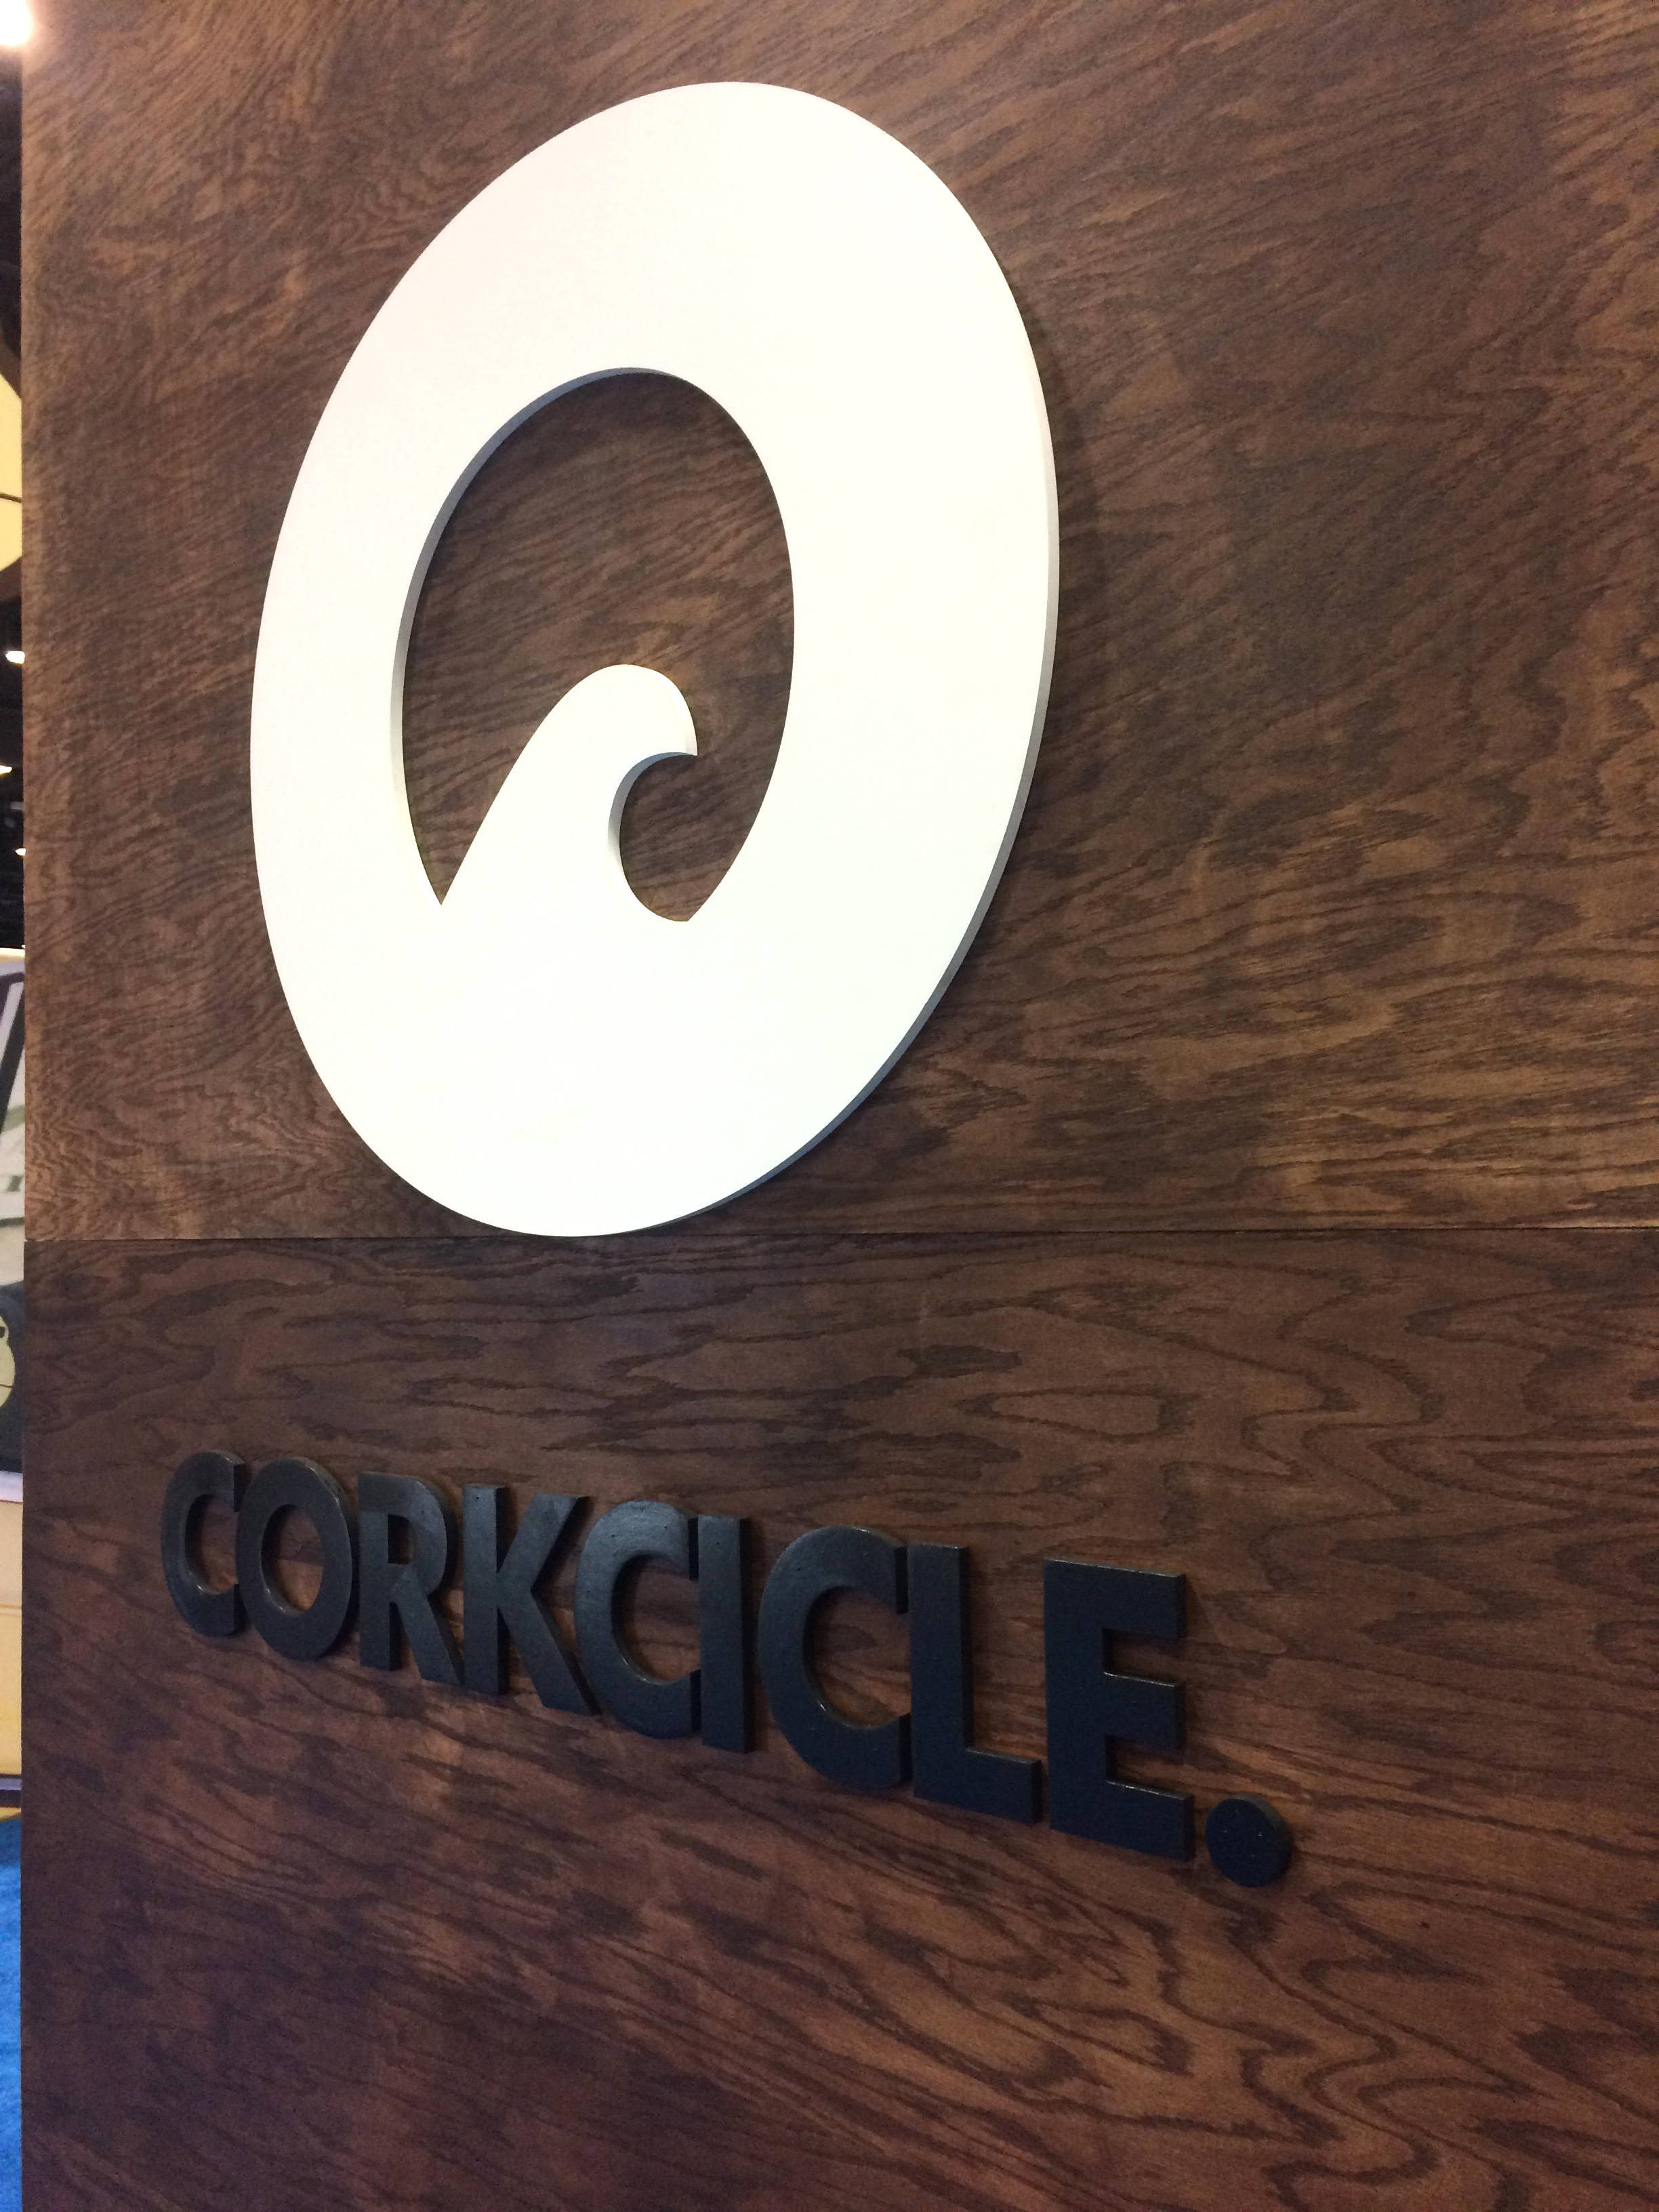 Corkcicle had a really nice booth, although they were too busy on the inside to take a decent photo of all the sweet details.